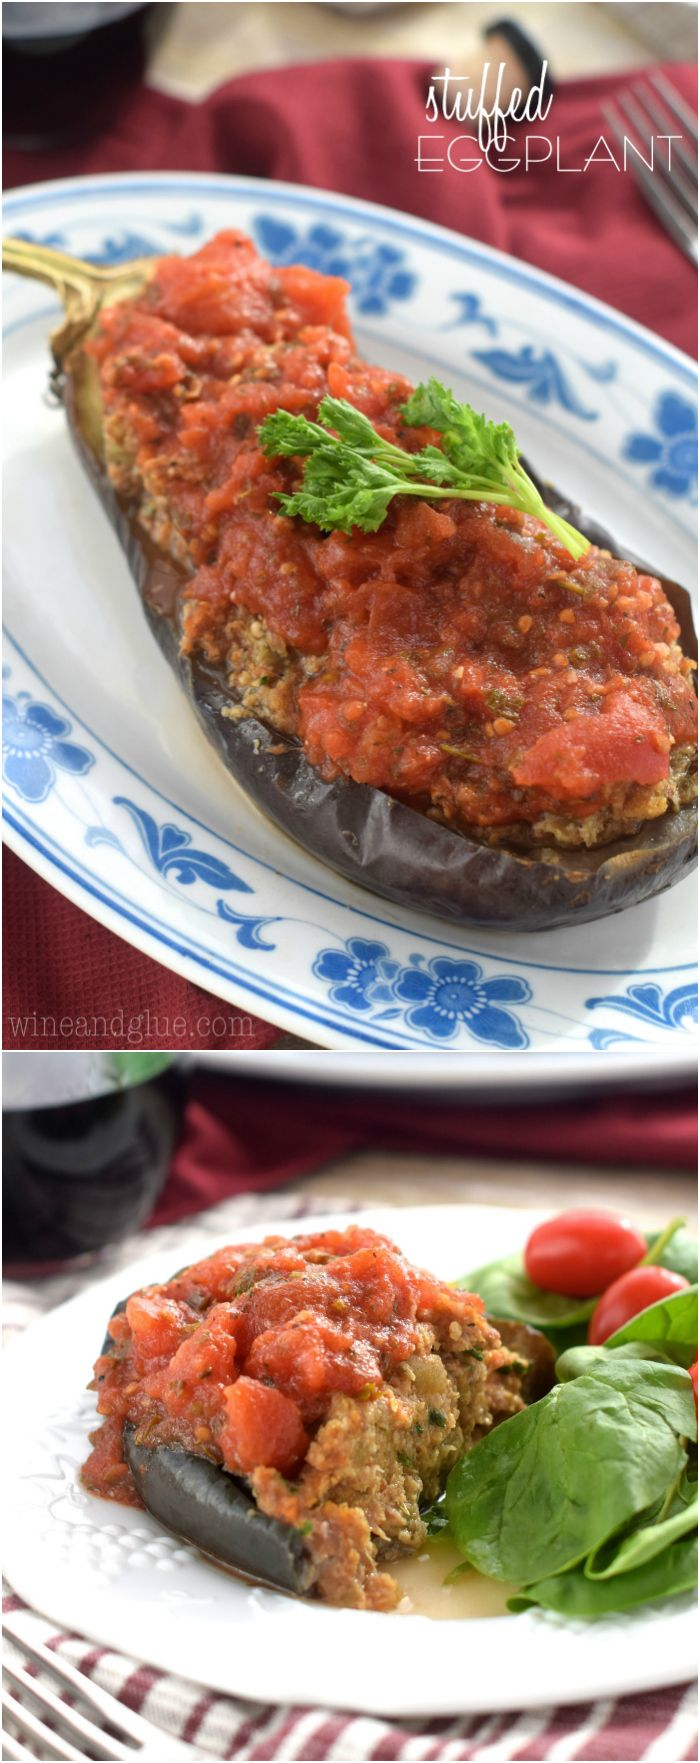 Stuffed Eggplant with delicious spicy sausage, bread crumbs, eggs, and cooked eggplant all topped with a homemade red sauce!